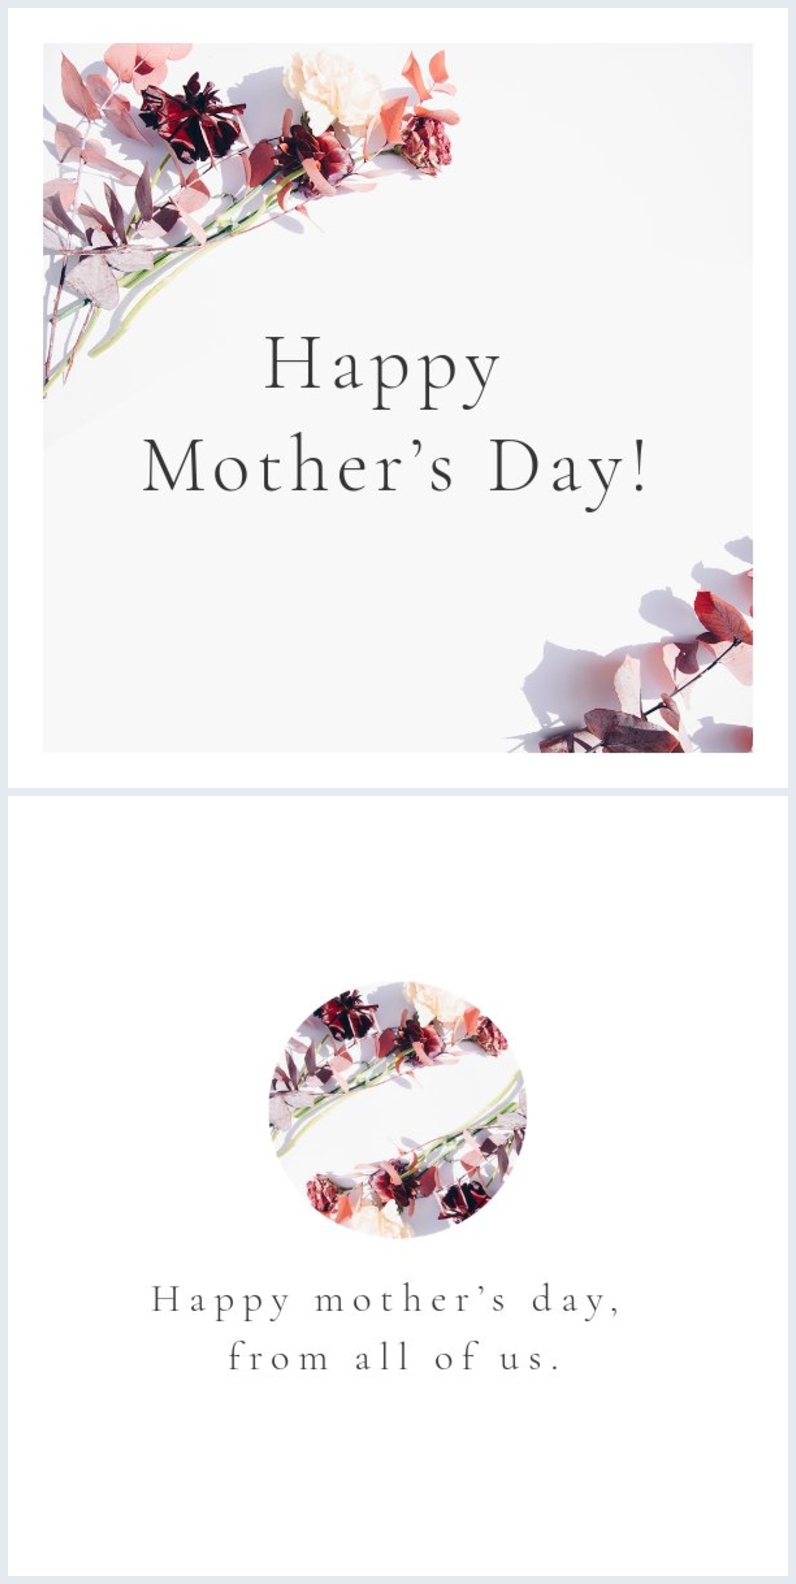 Floral happy mother's day card layout